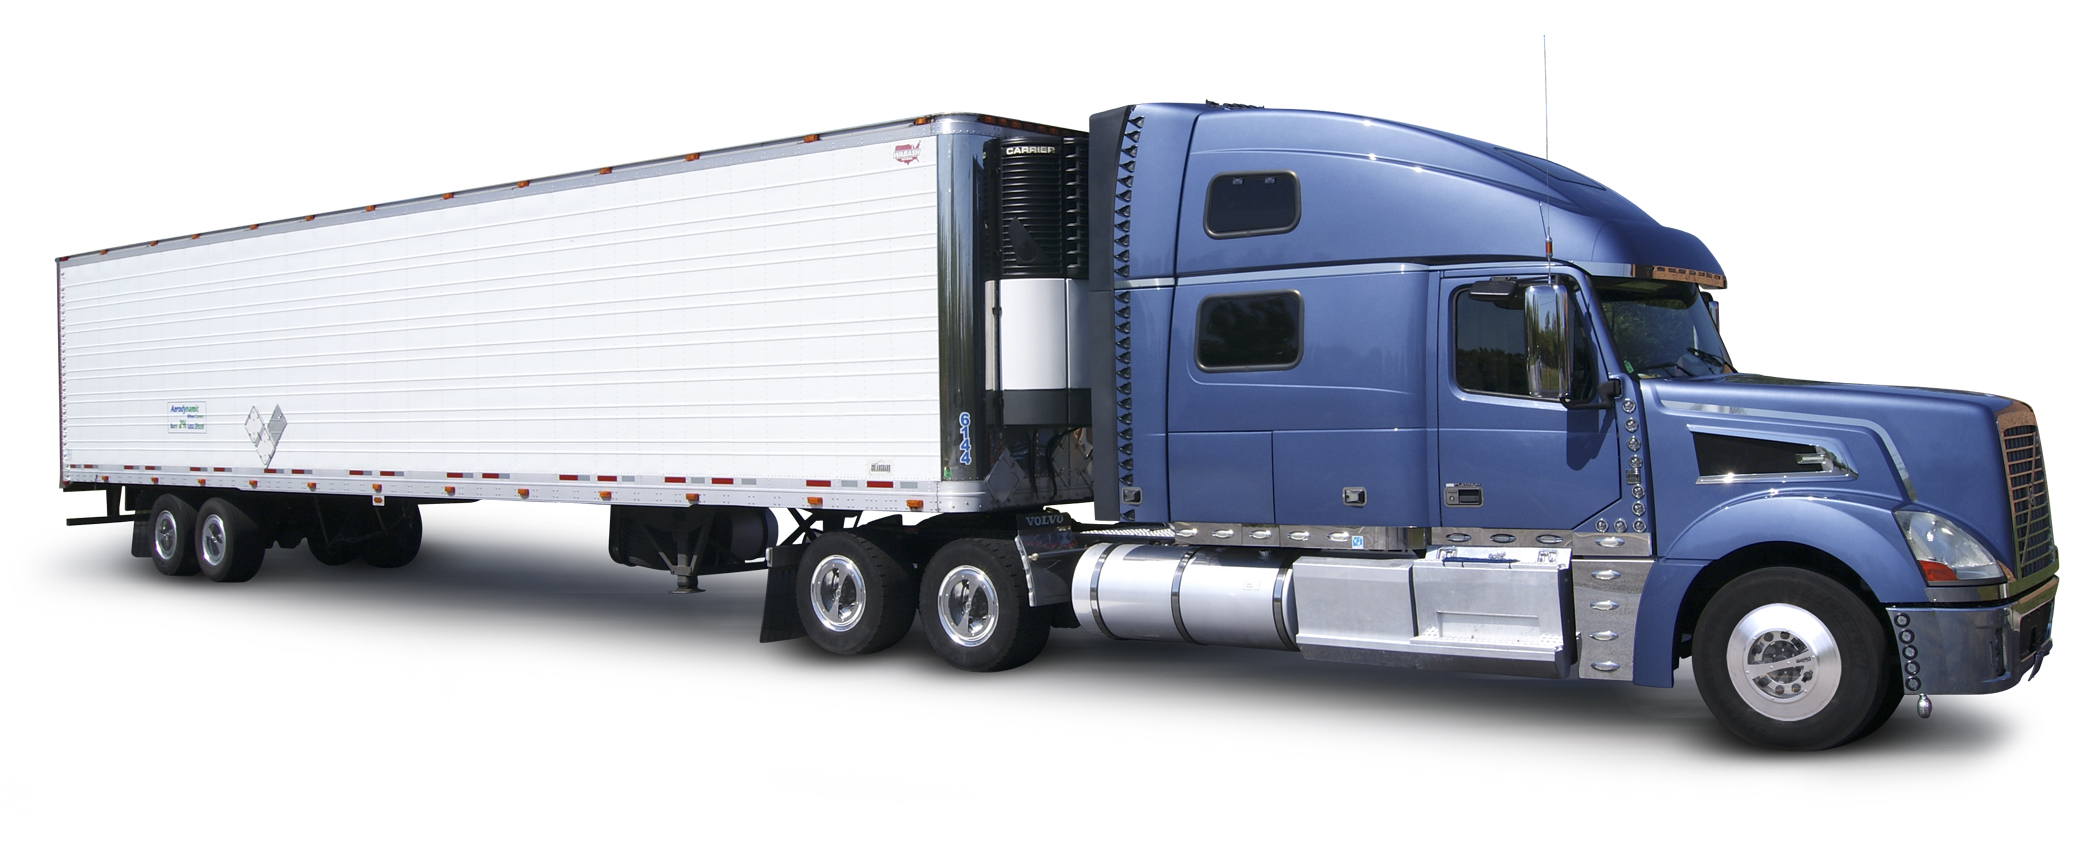 Truck Rig PNG - 85112